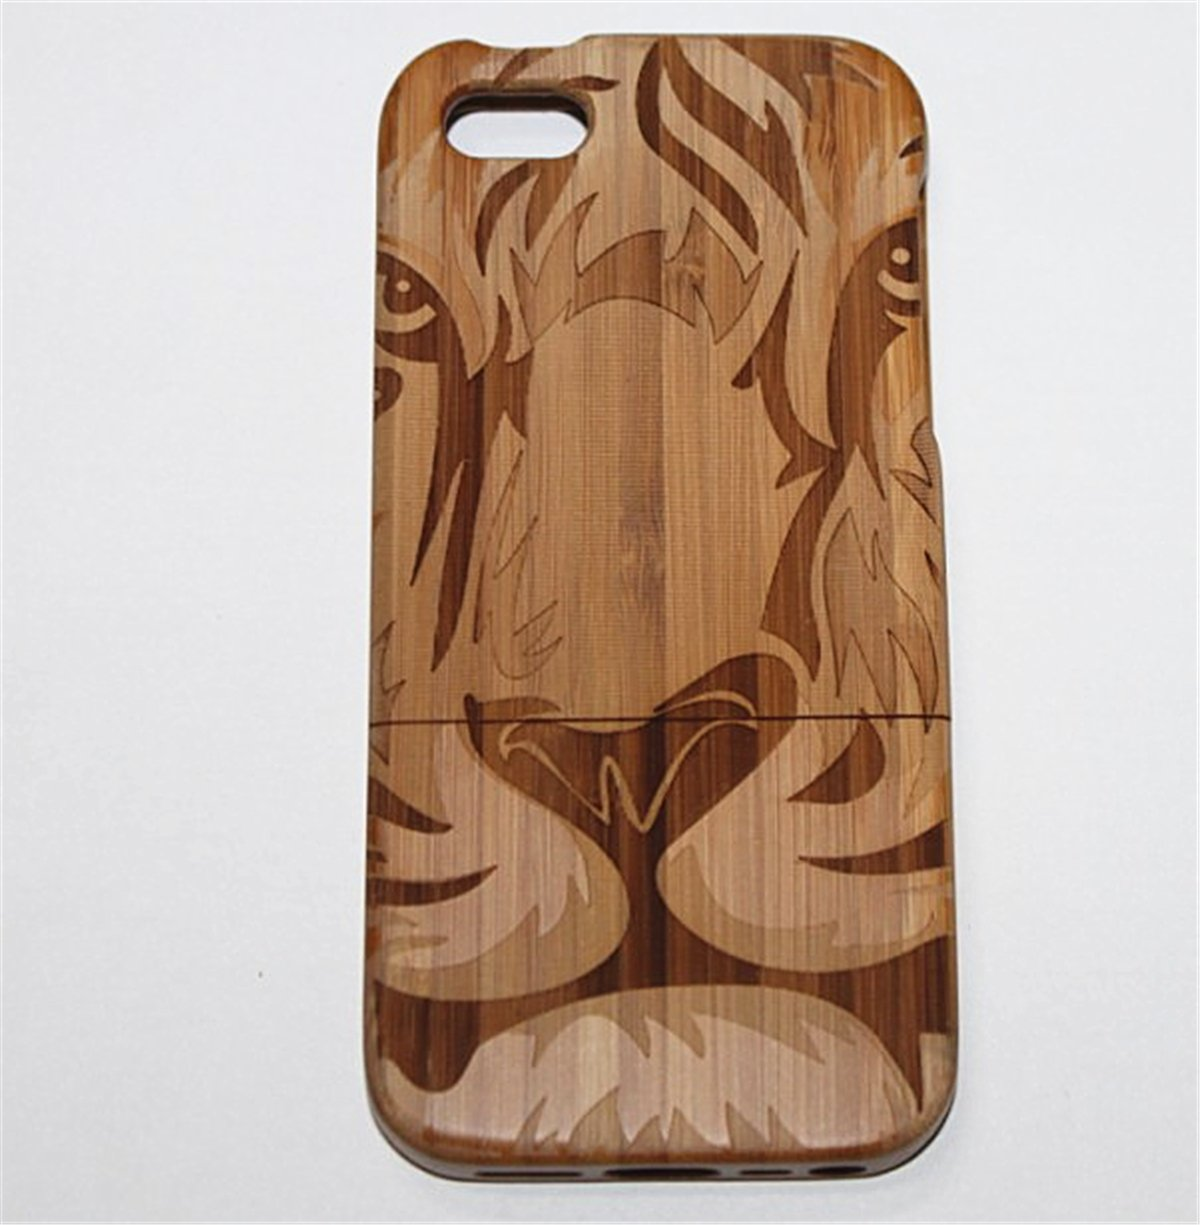 iPhone 6/6S Case, Firefish Tiger Pattern Natural Handmade Hard Wood Case Cove With Laser Engraved Shock & Scratch Protective For iPhone 6/6S ( With A Stylus) -Tiger